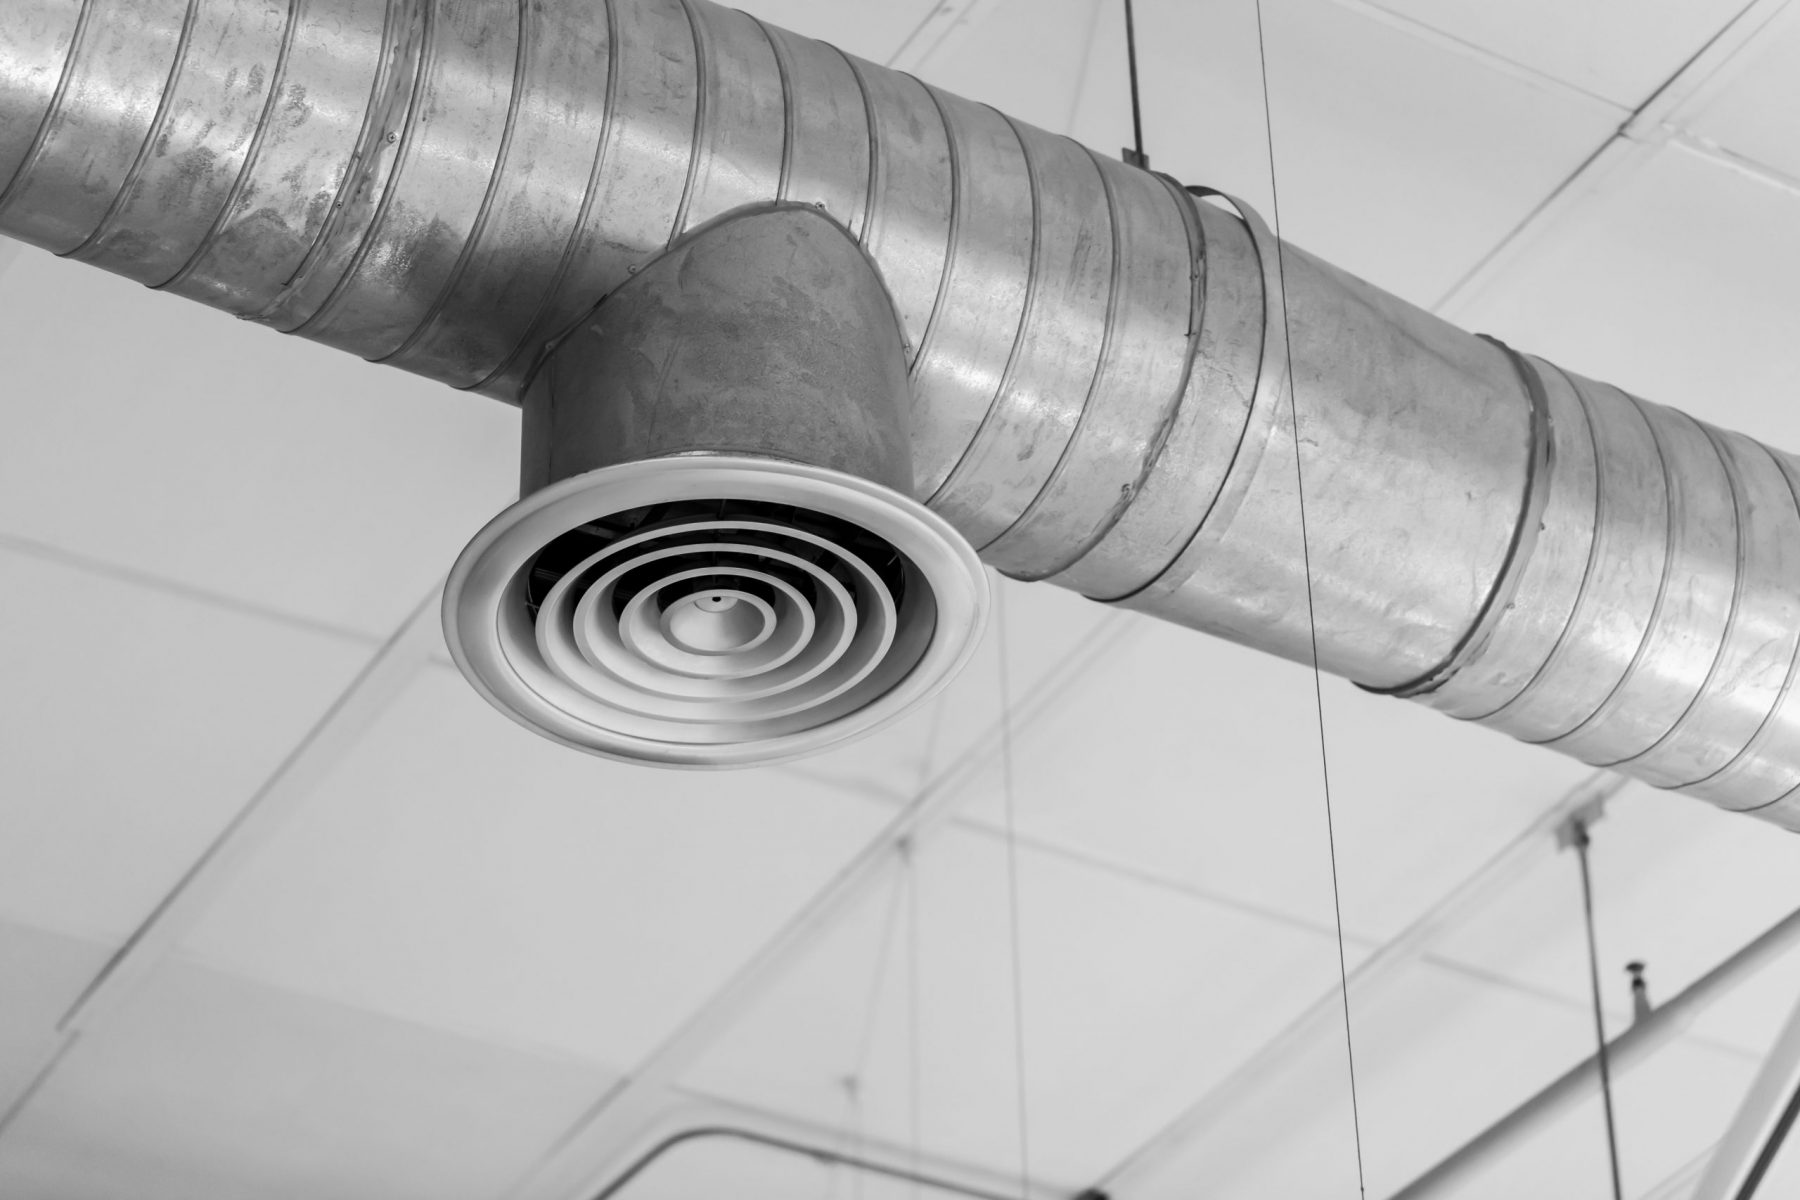 Air duct with vent hanging from ceiling